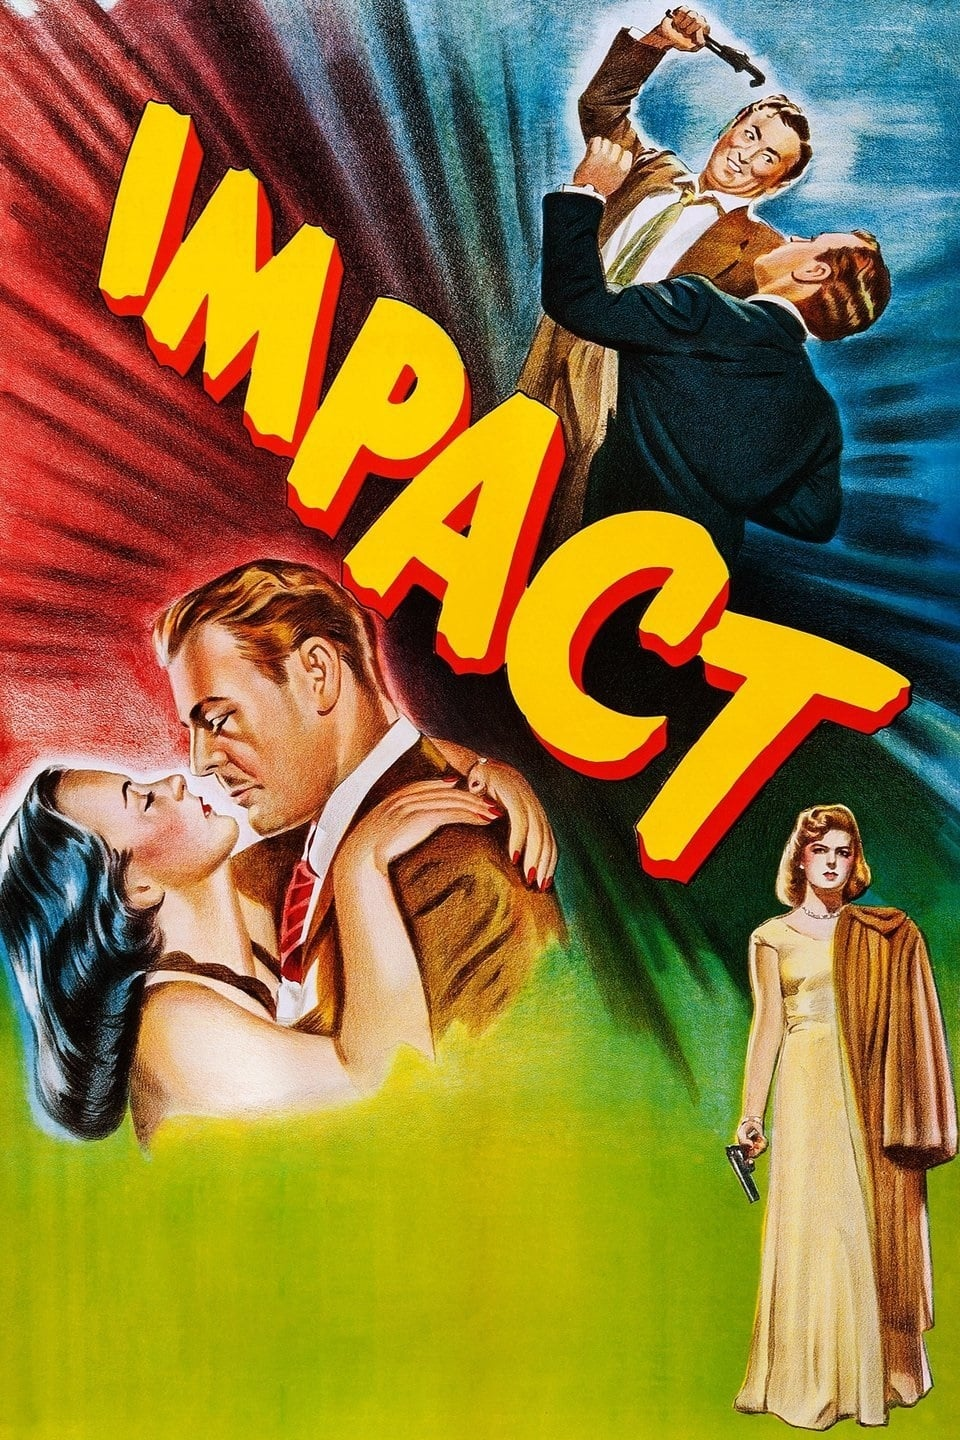 Impact on FREECABLE TV